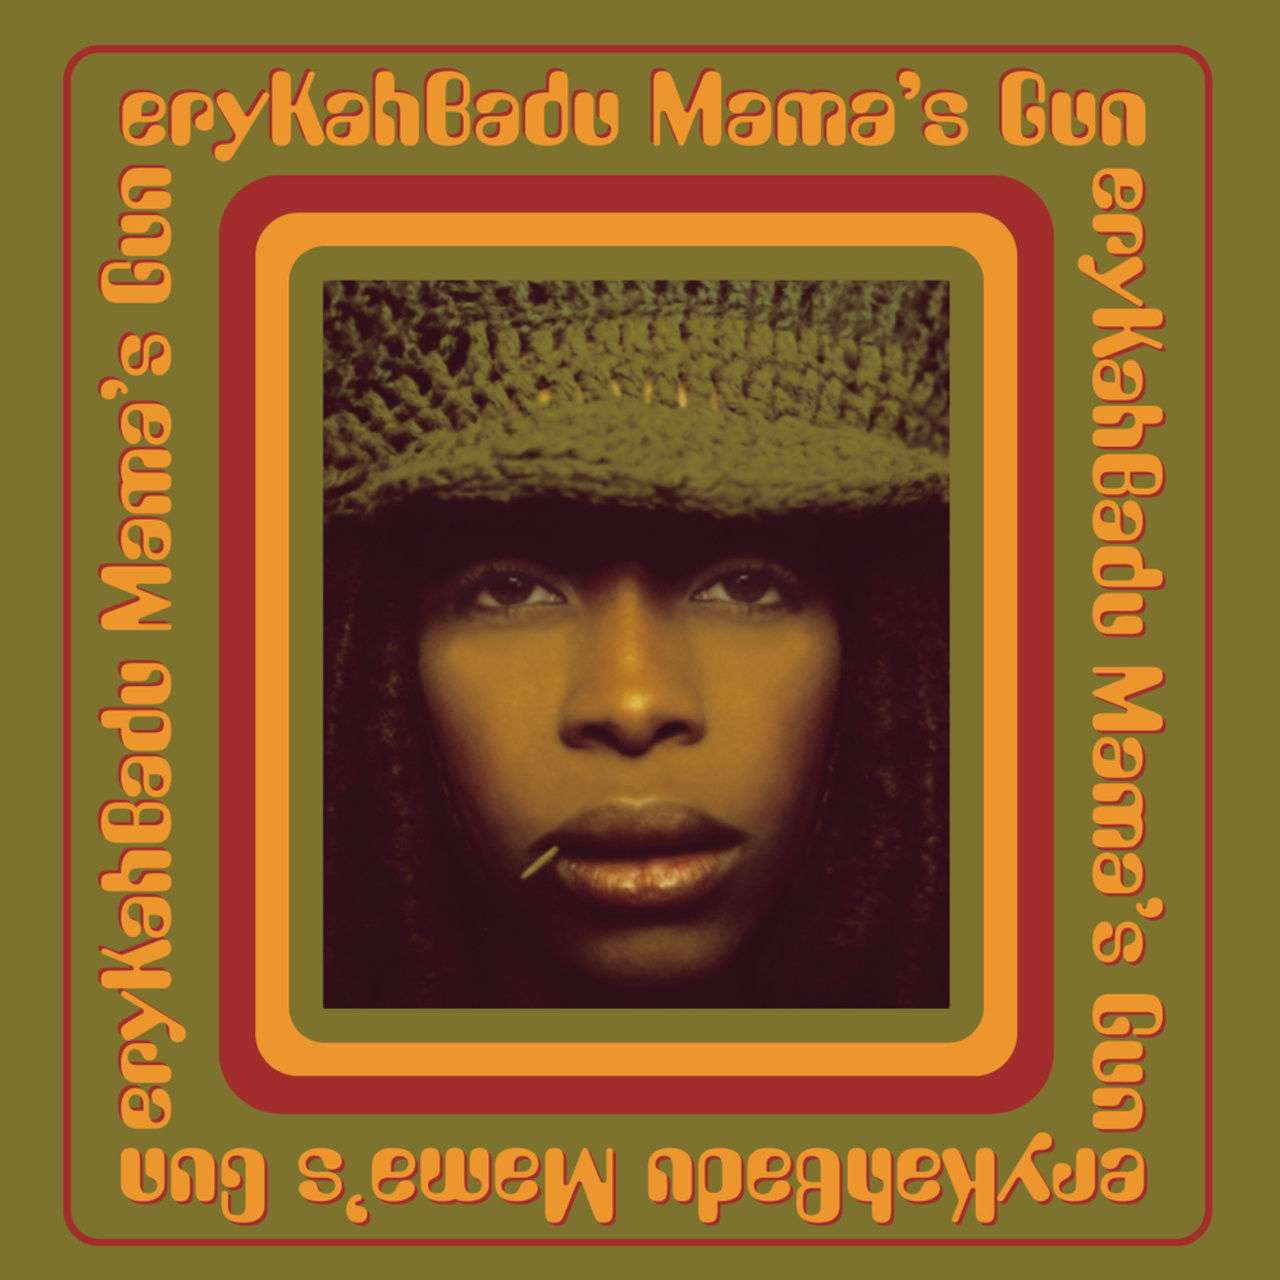 Classic Album Sundays London Presents Erykah Badu 'Mama's Gun' SOLD OUT |  Classic Album Sundays